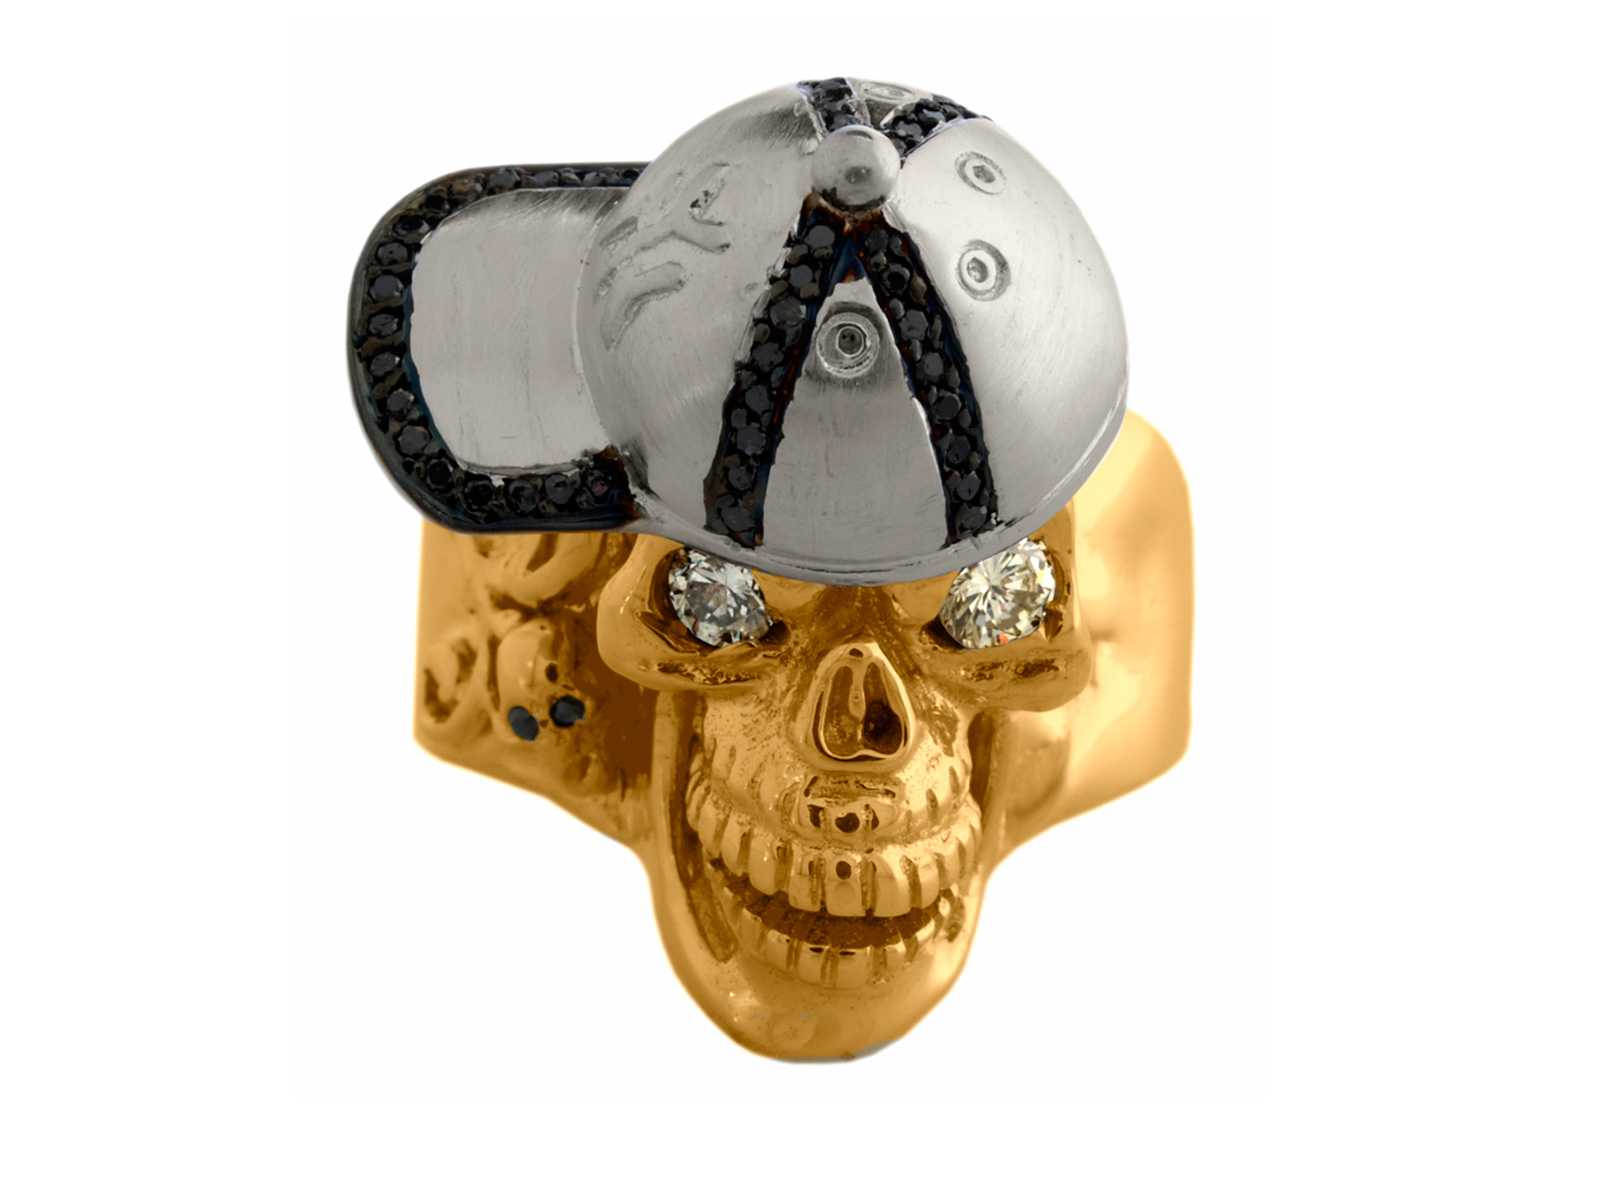 RG1002-B The Player Skull Ring (Front View) in Yellow Gold and White Gold, White Diamonds and Black Diamonds, designed by Steve Soffa